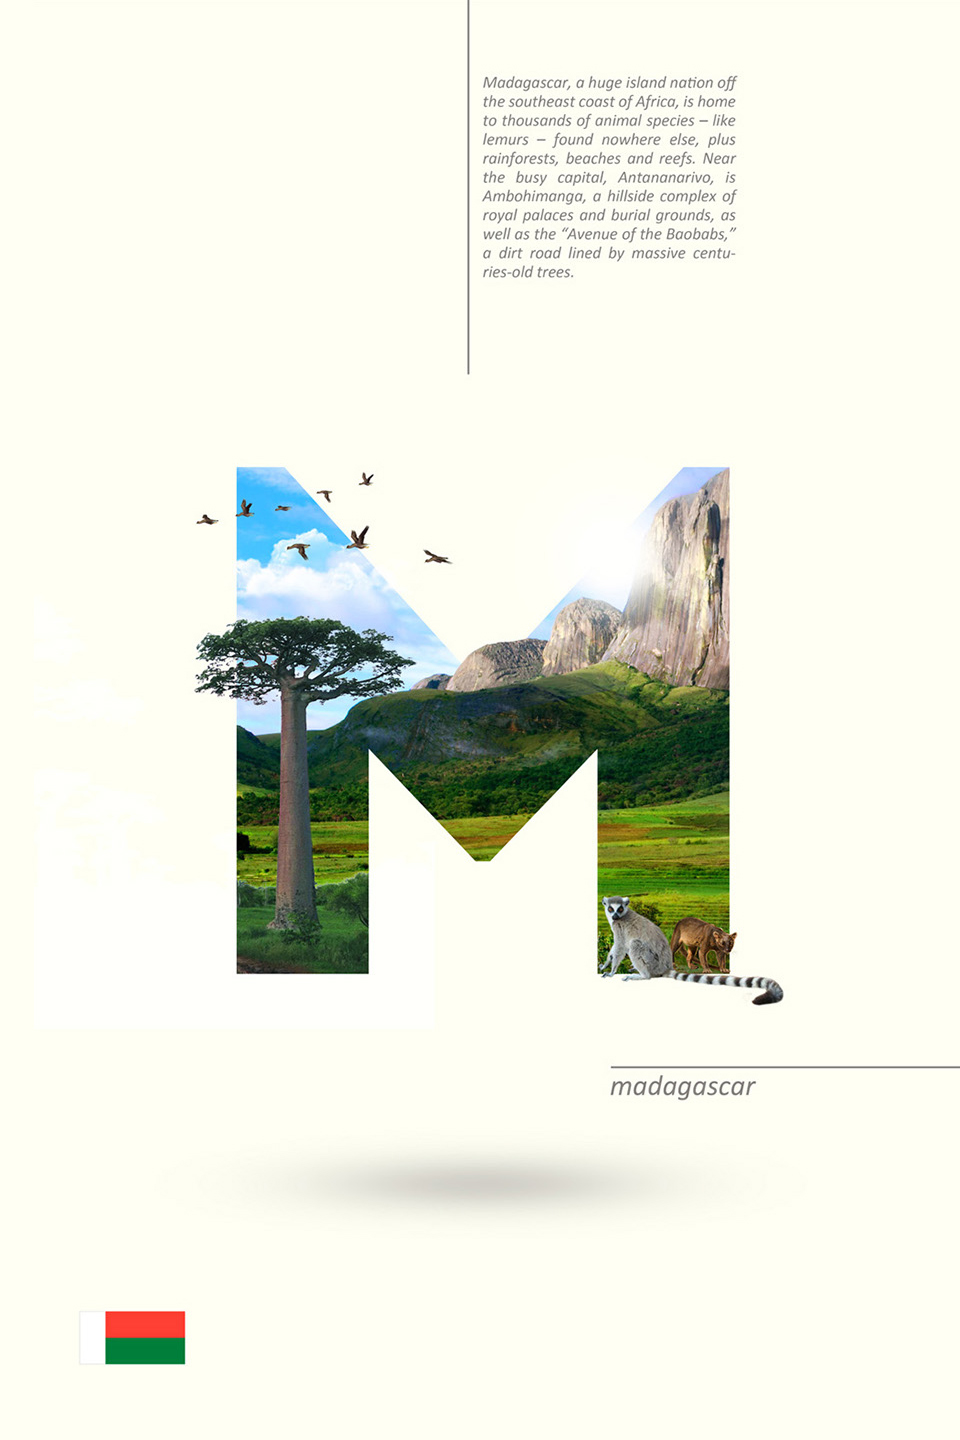 Beautiful Alphabet Series Of Countries And Their Iconic Landmarks - Madagascar